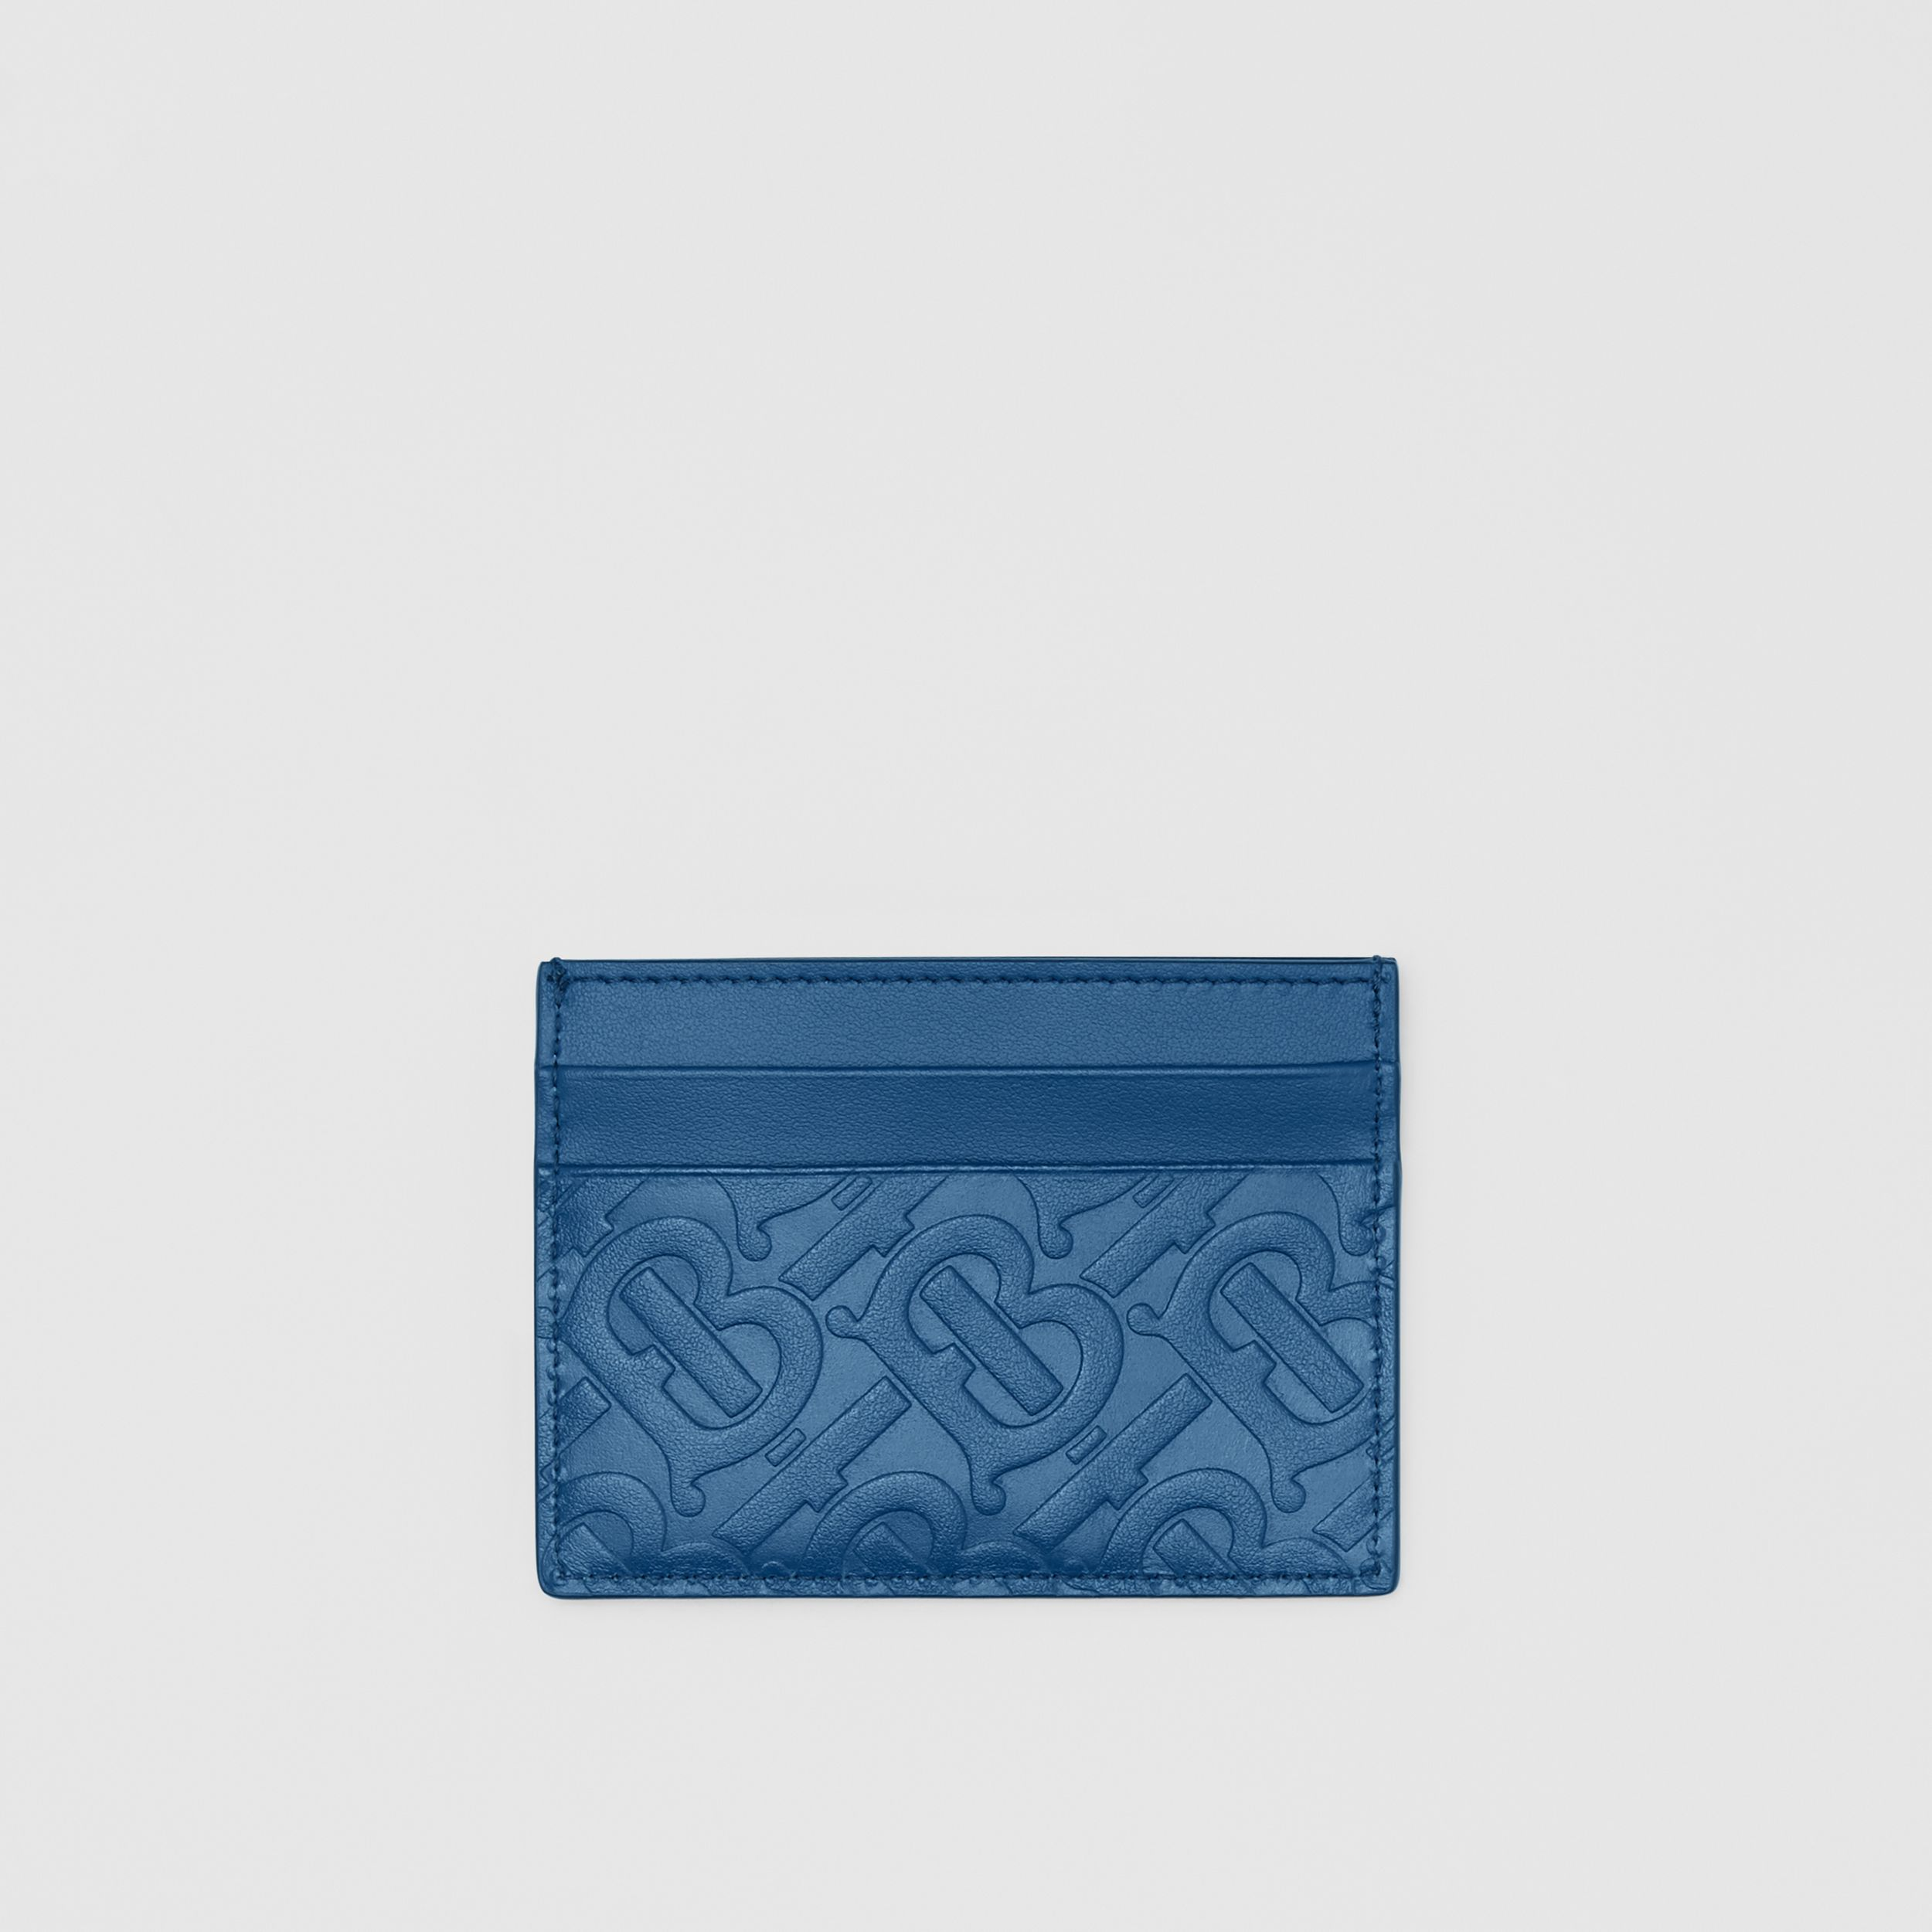 Monogram Leather Card Case in Pale Canvas Blue - Men | Burberry United States - 1